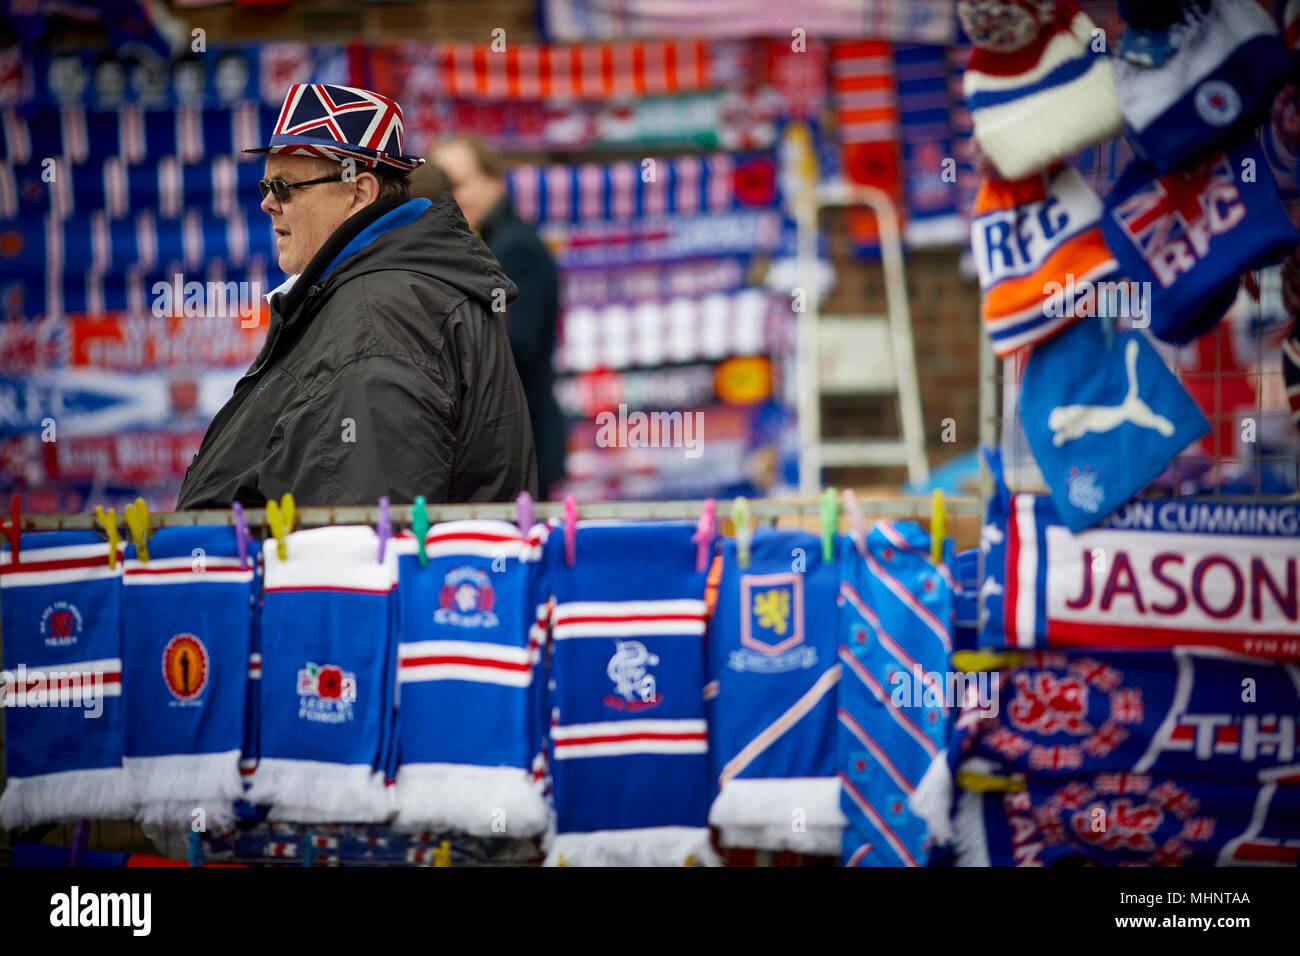 Glasgow in Scotland, Rangers FC street trader selling scarfs and